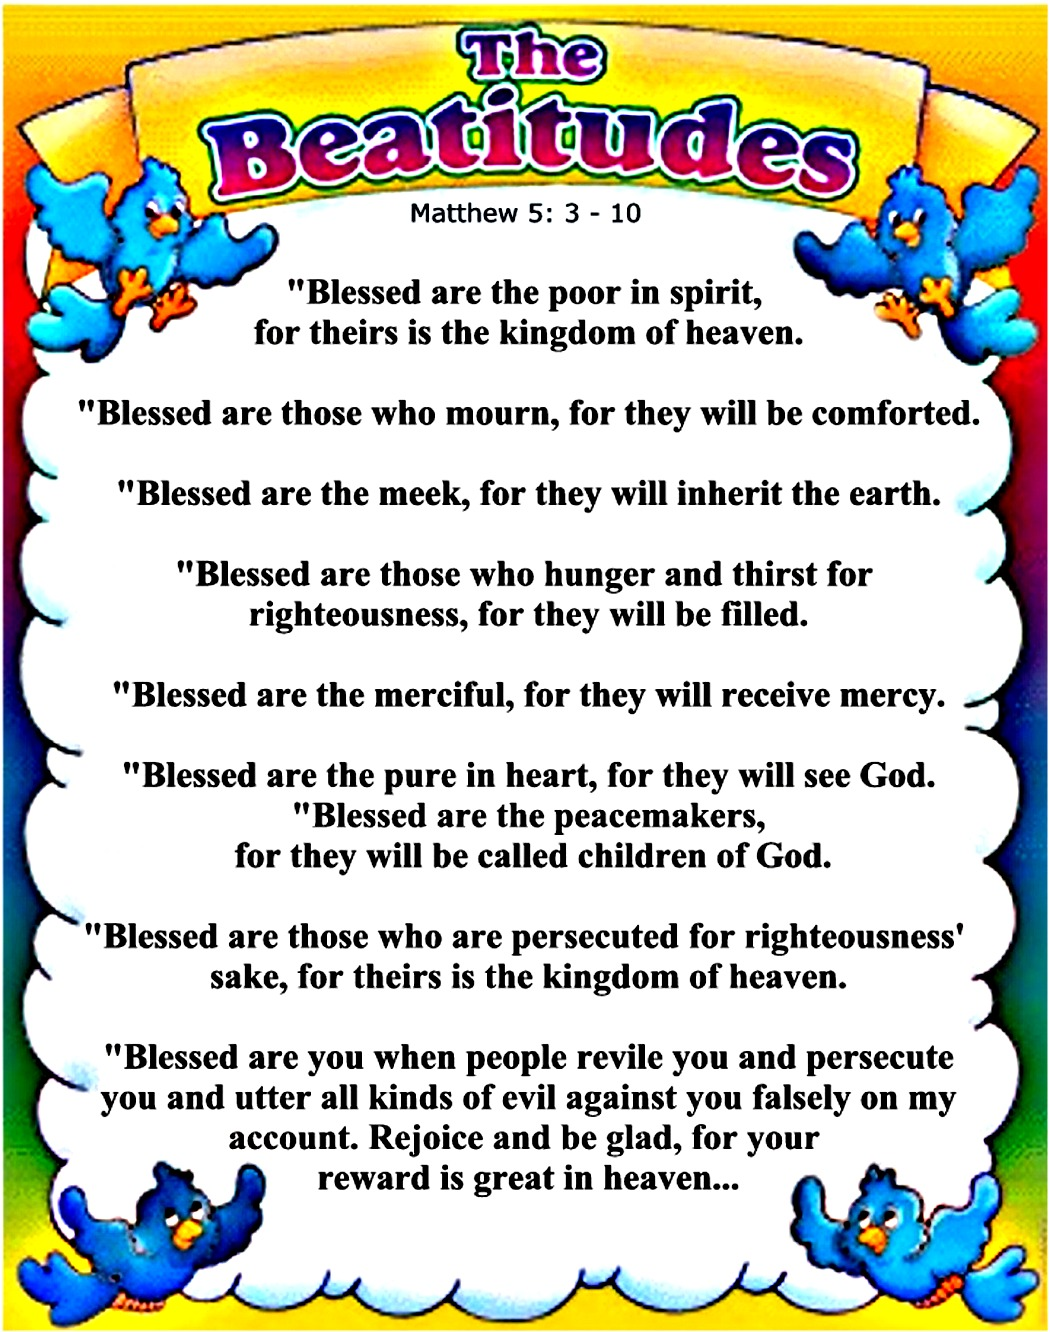 The Beatitudes 7 by 8.8 for website